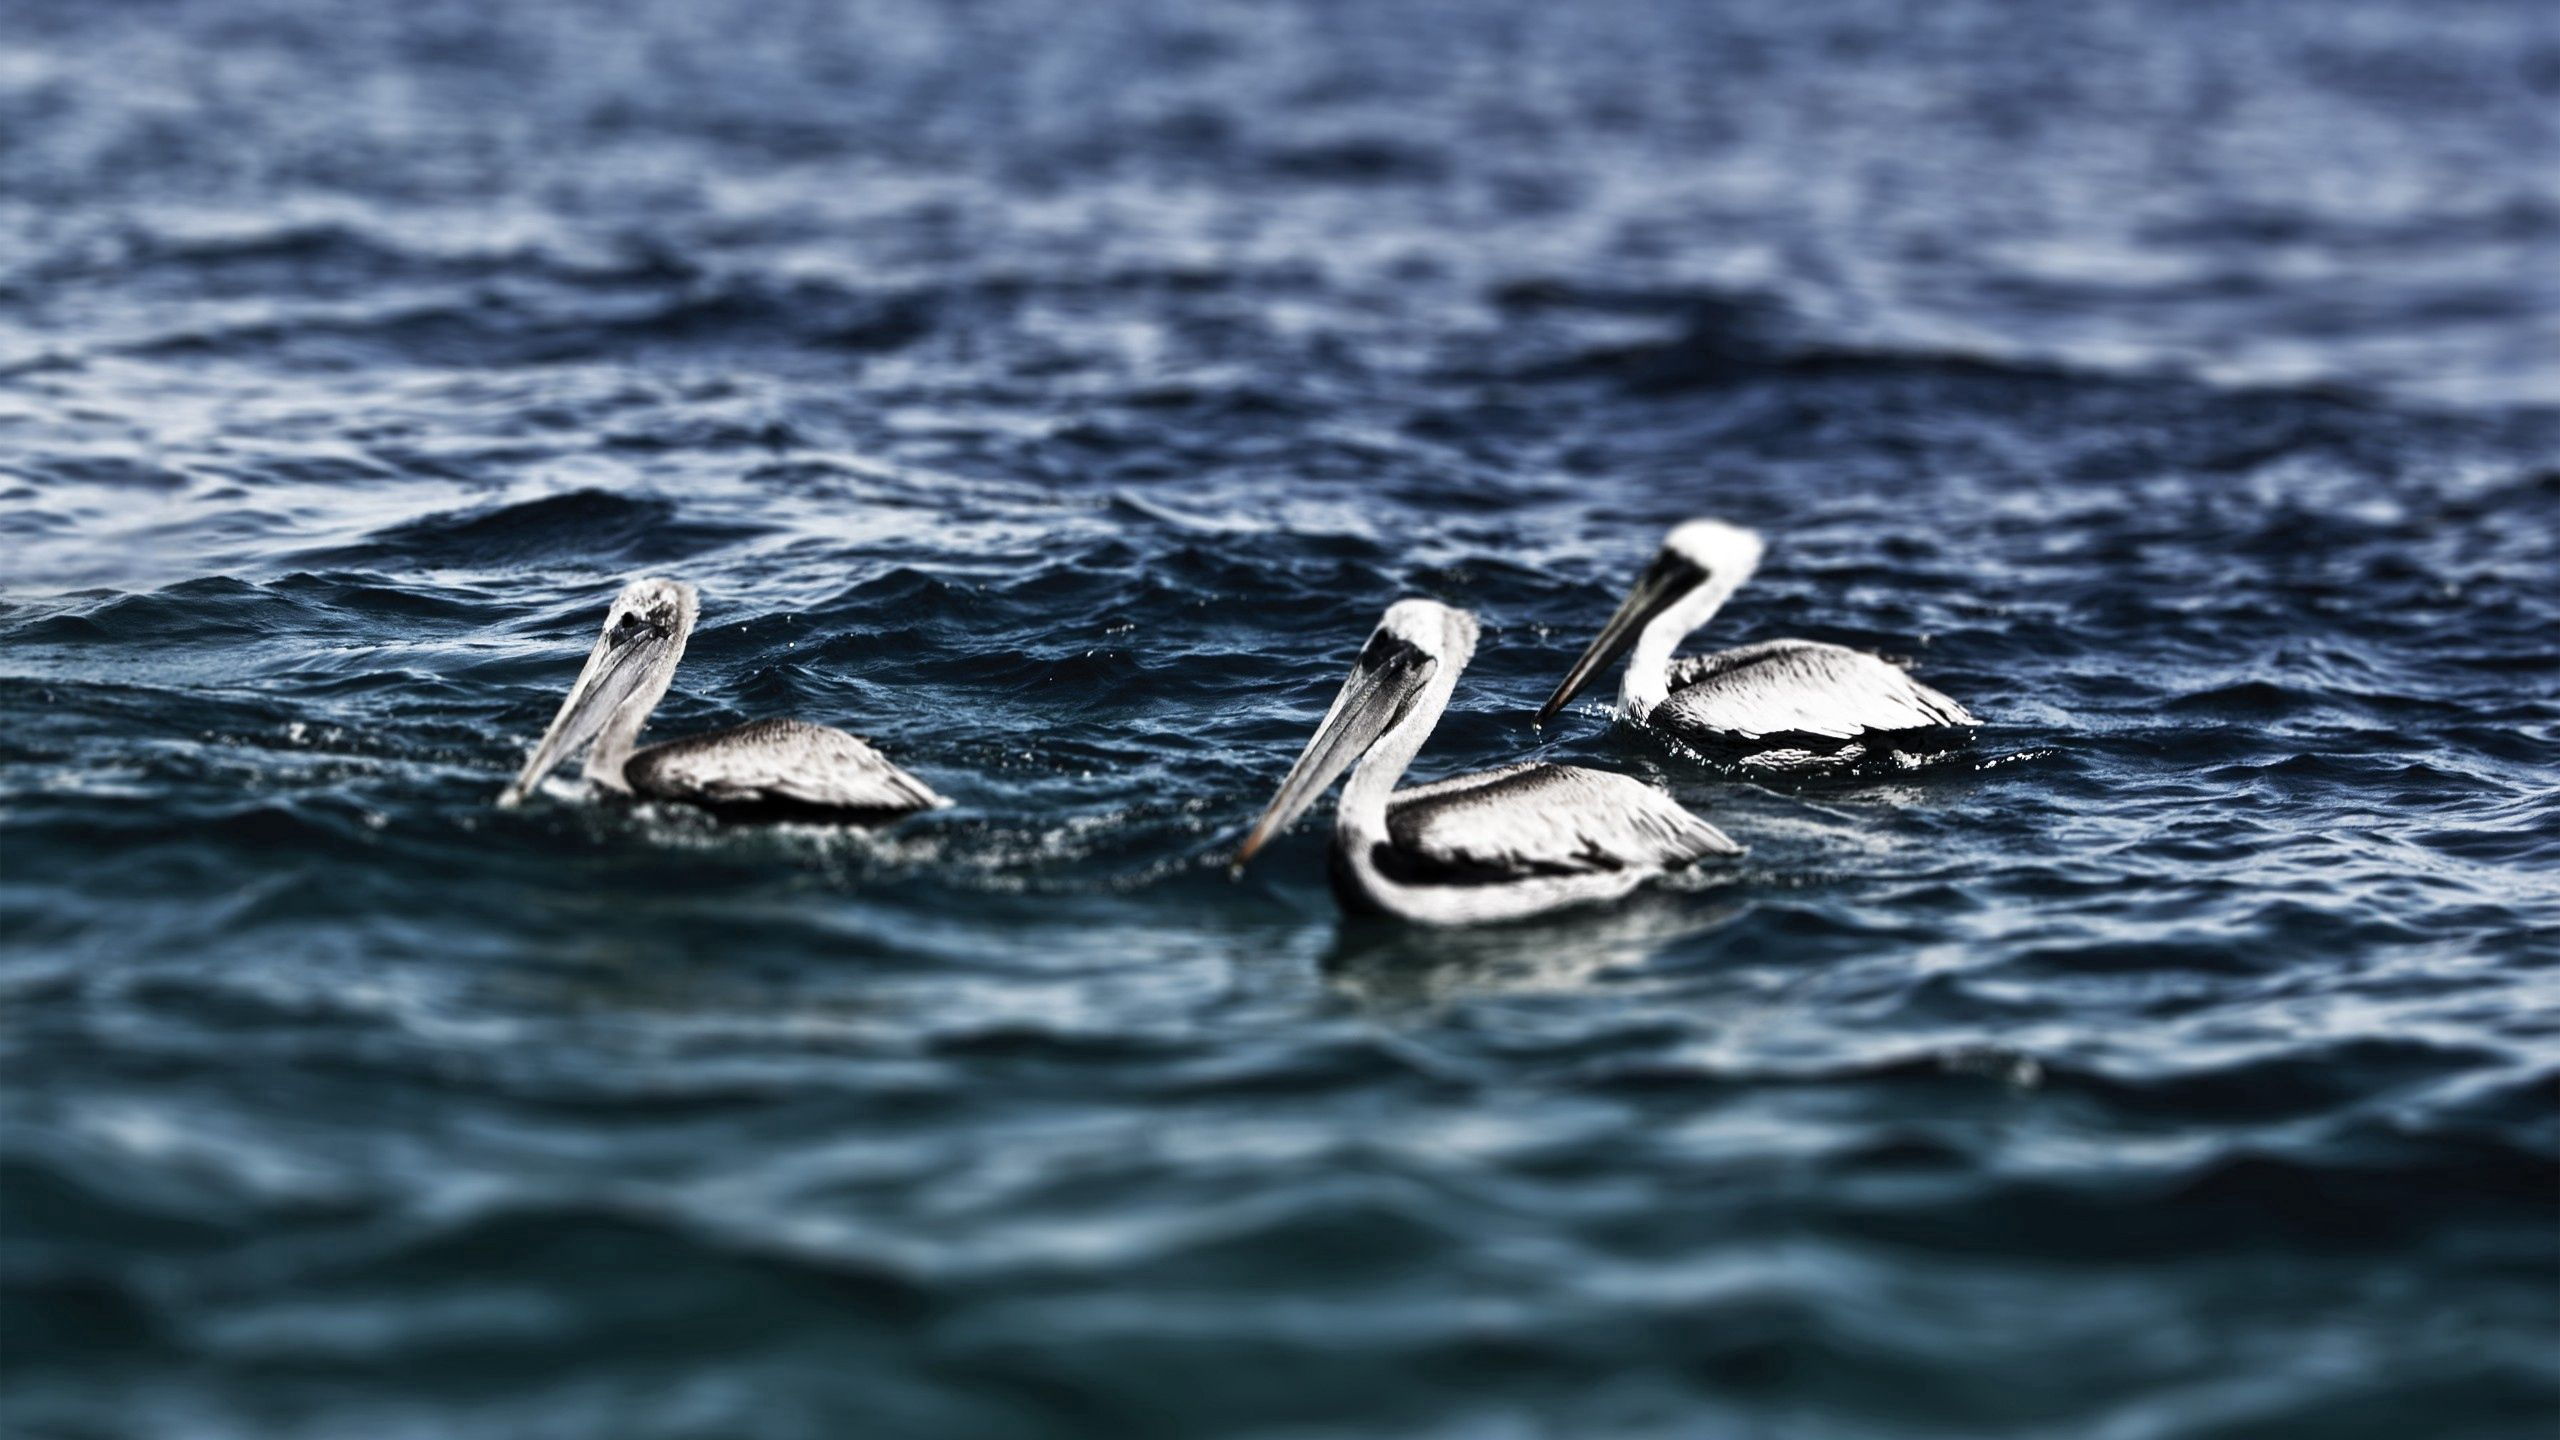 93759 download wallpaper Animals, Sea, Water, Swimming, Birds, Pelicans screensavers and pictures for free